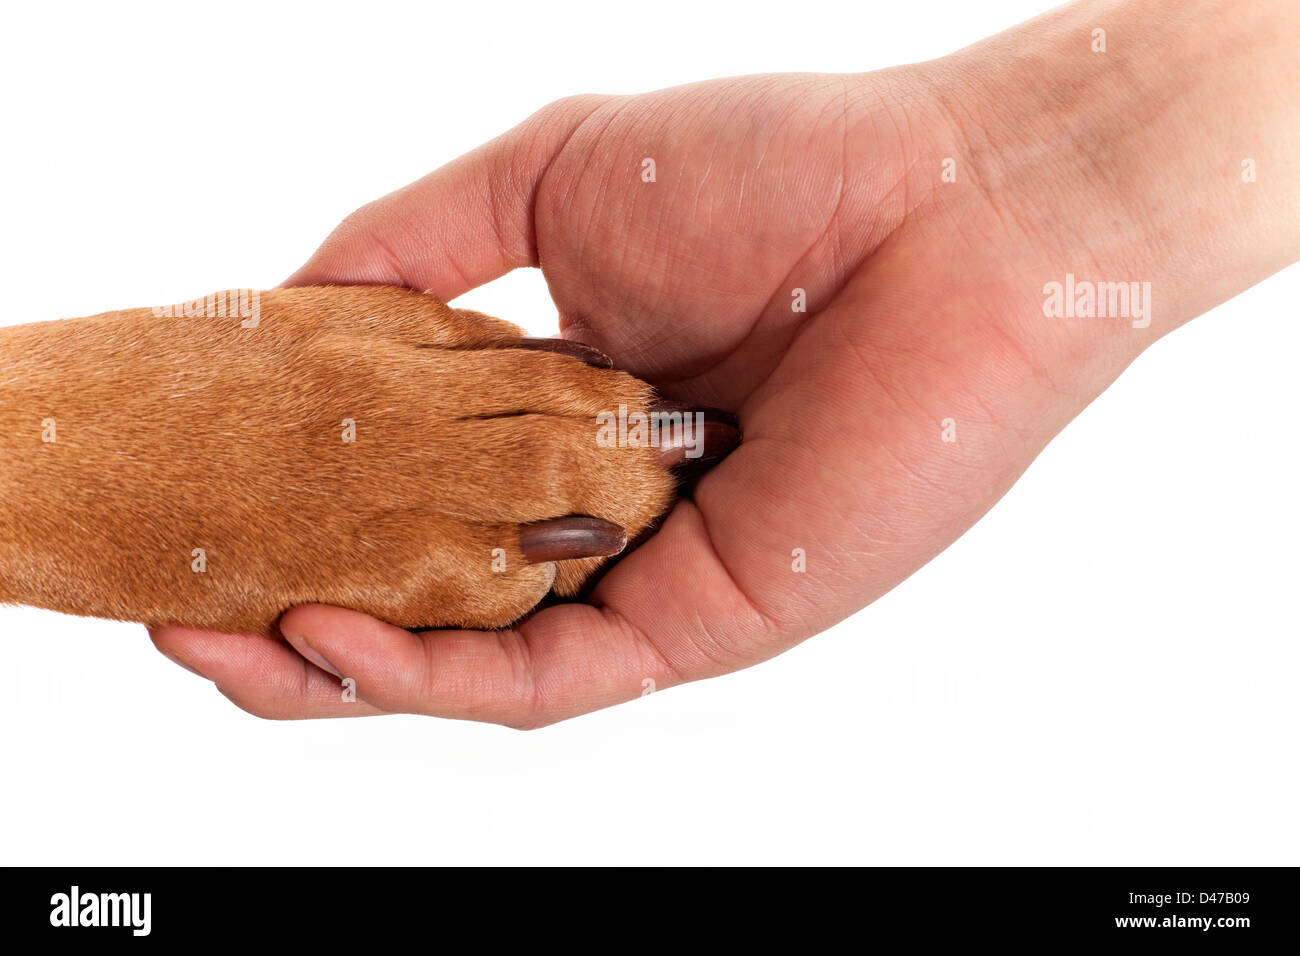 dog resting paw in human palm isolated on white background - Stock Image